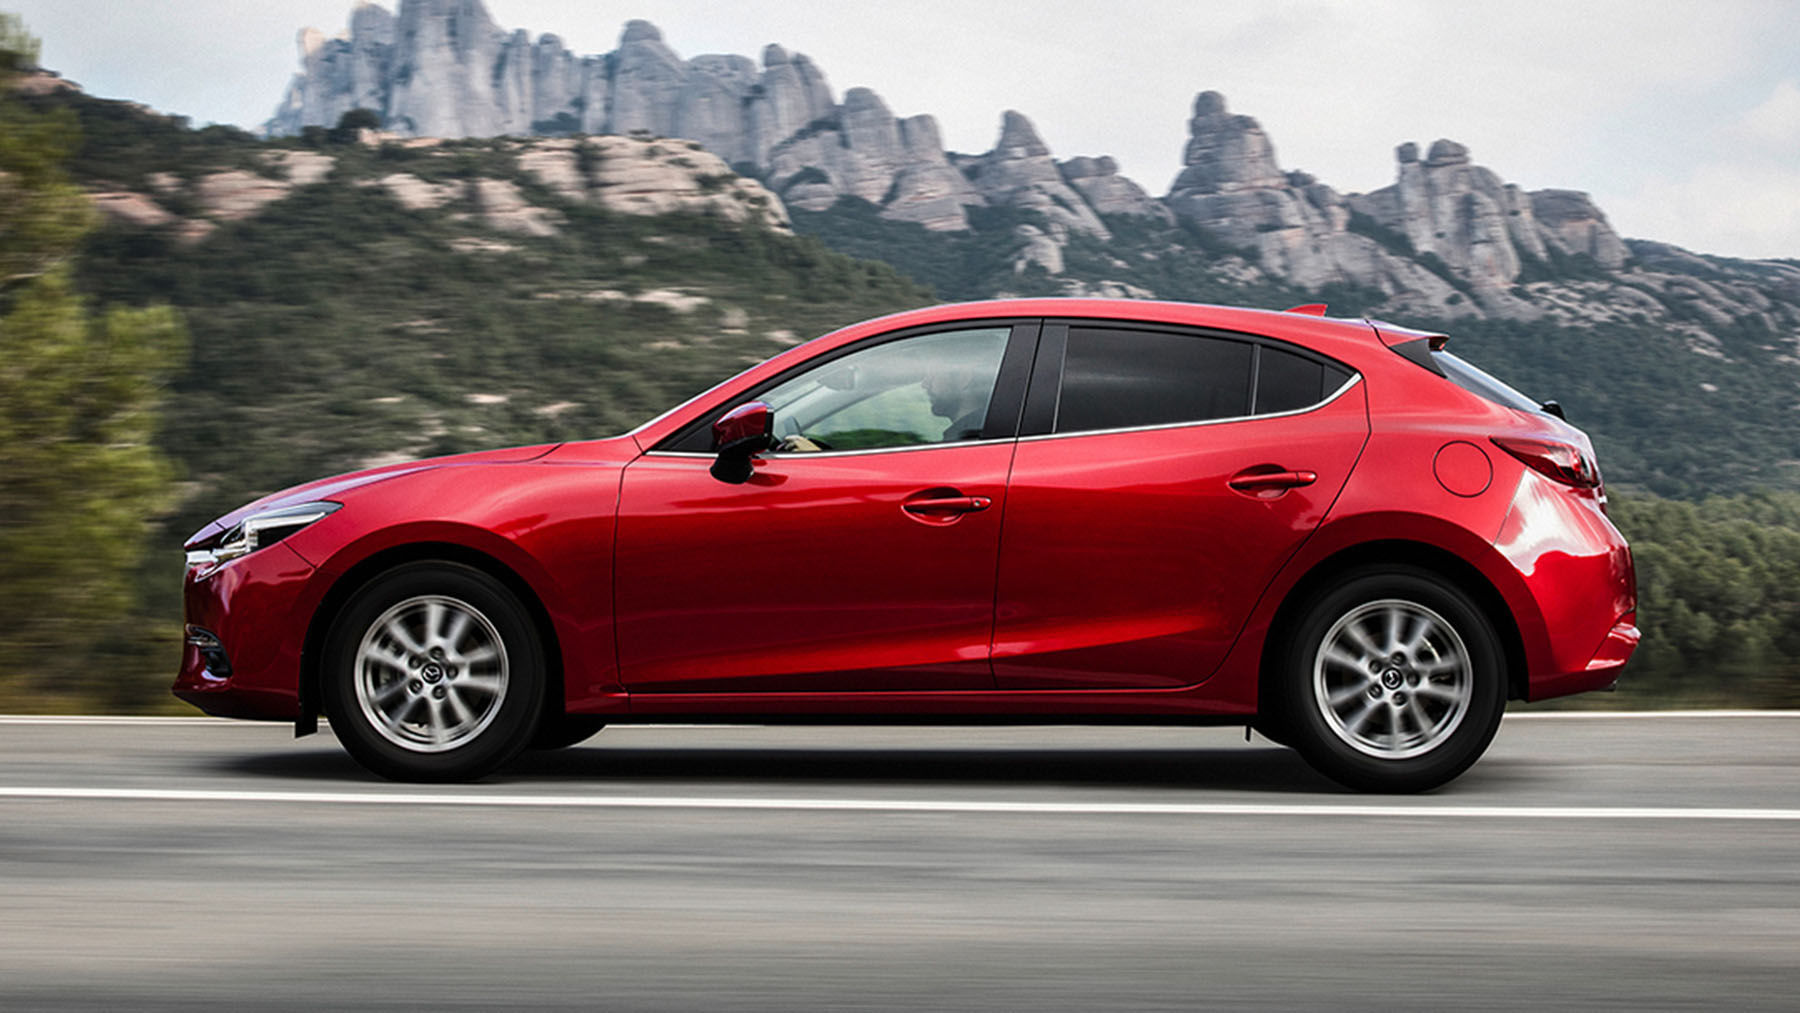 Mazda 3 Owners Manual: Taking Action